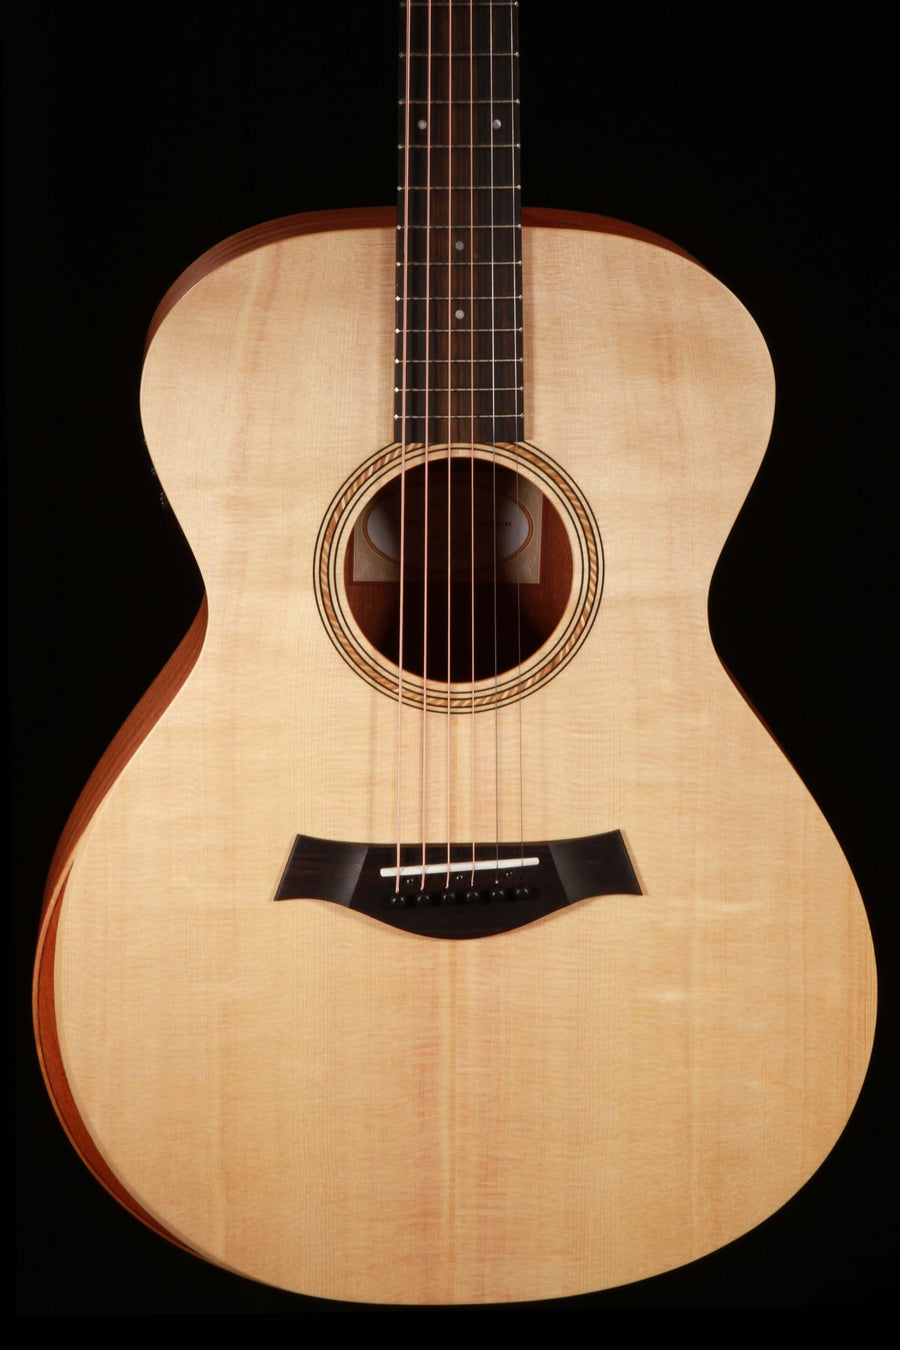 Taylor Academy 12e Grand Concert Acoustic Guitar with Electronics